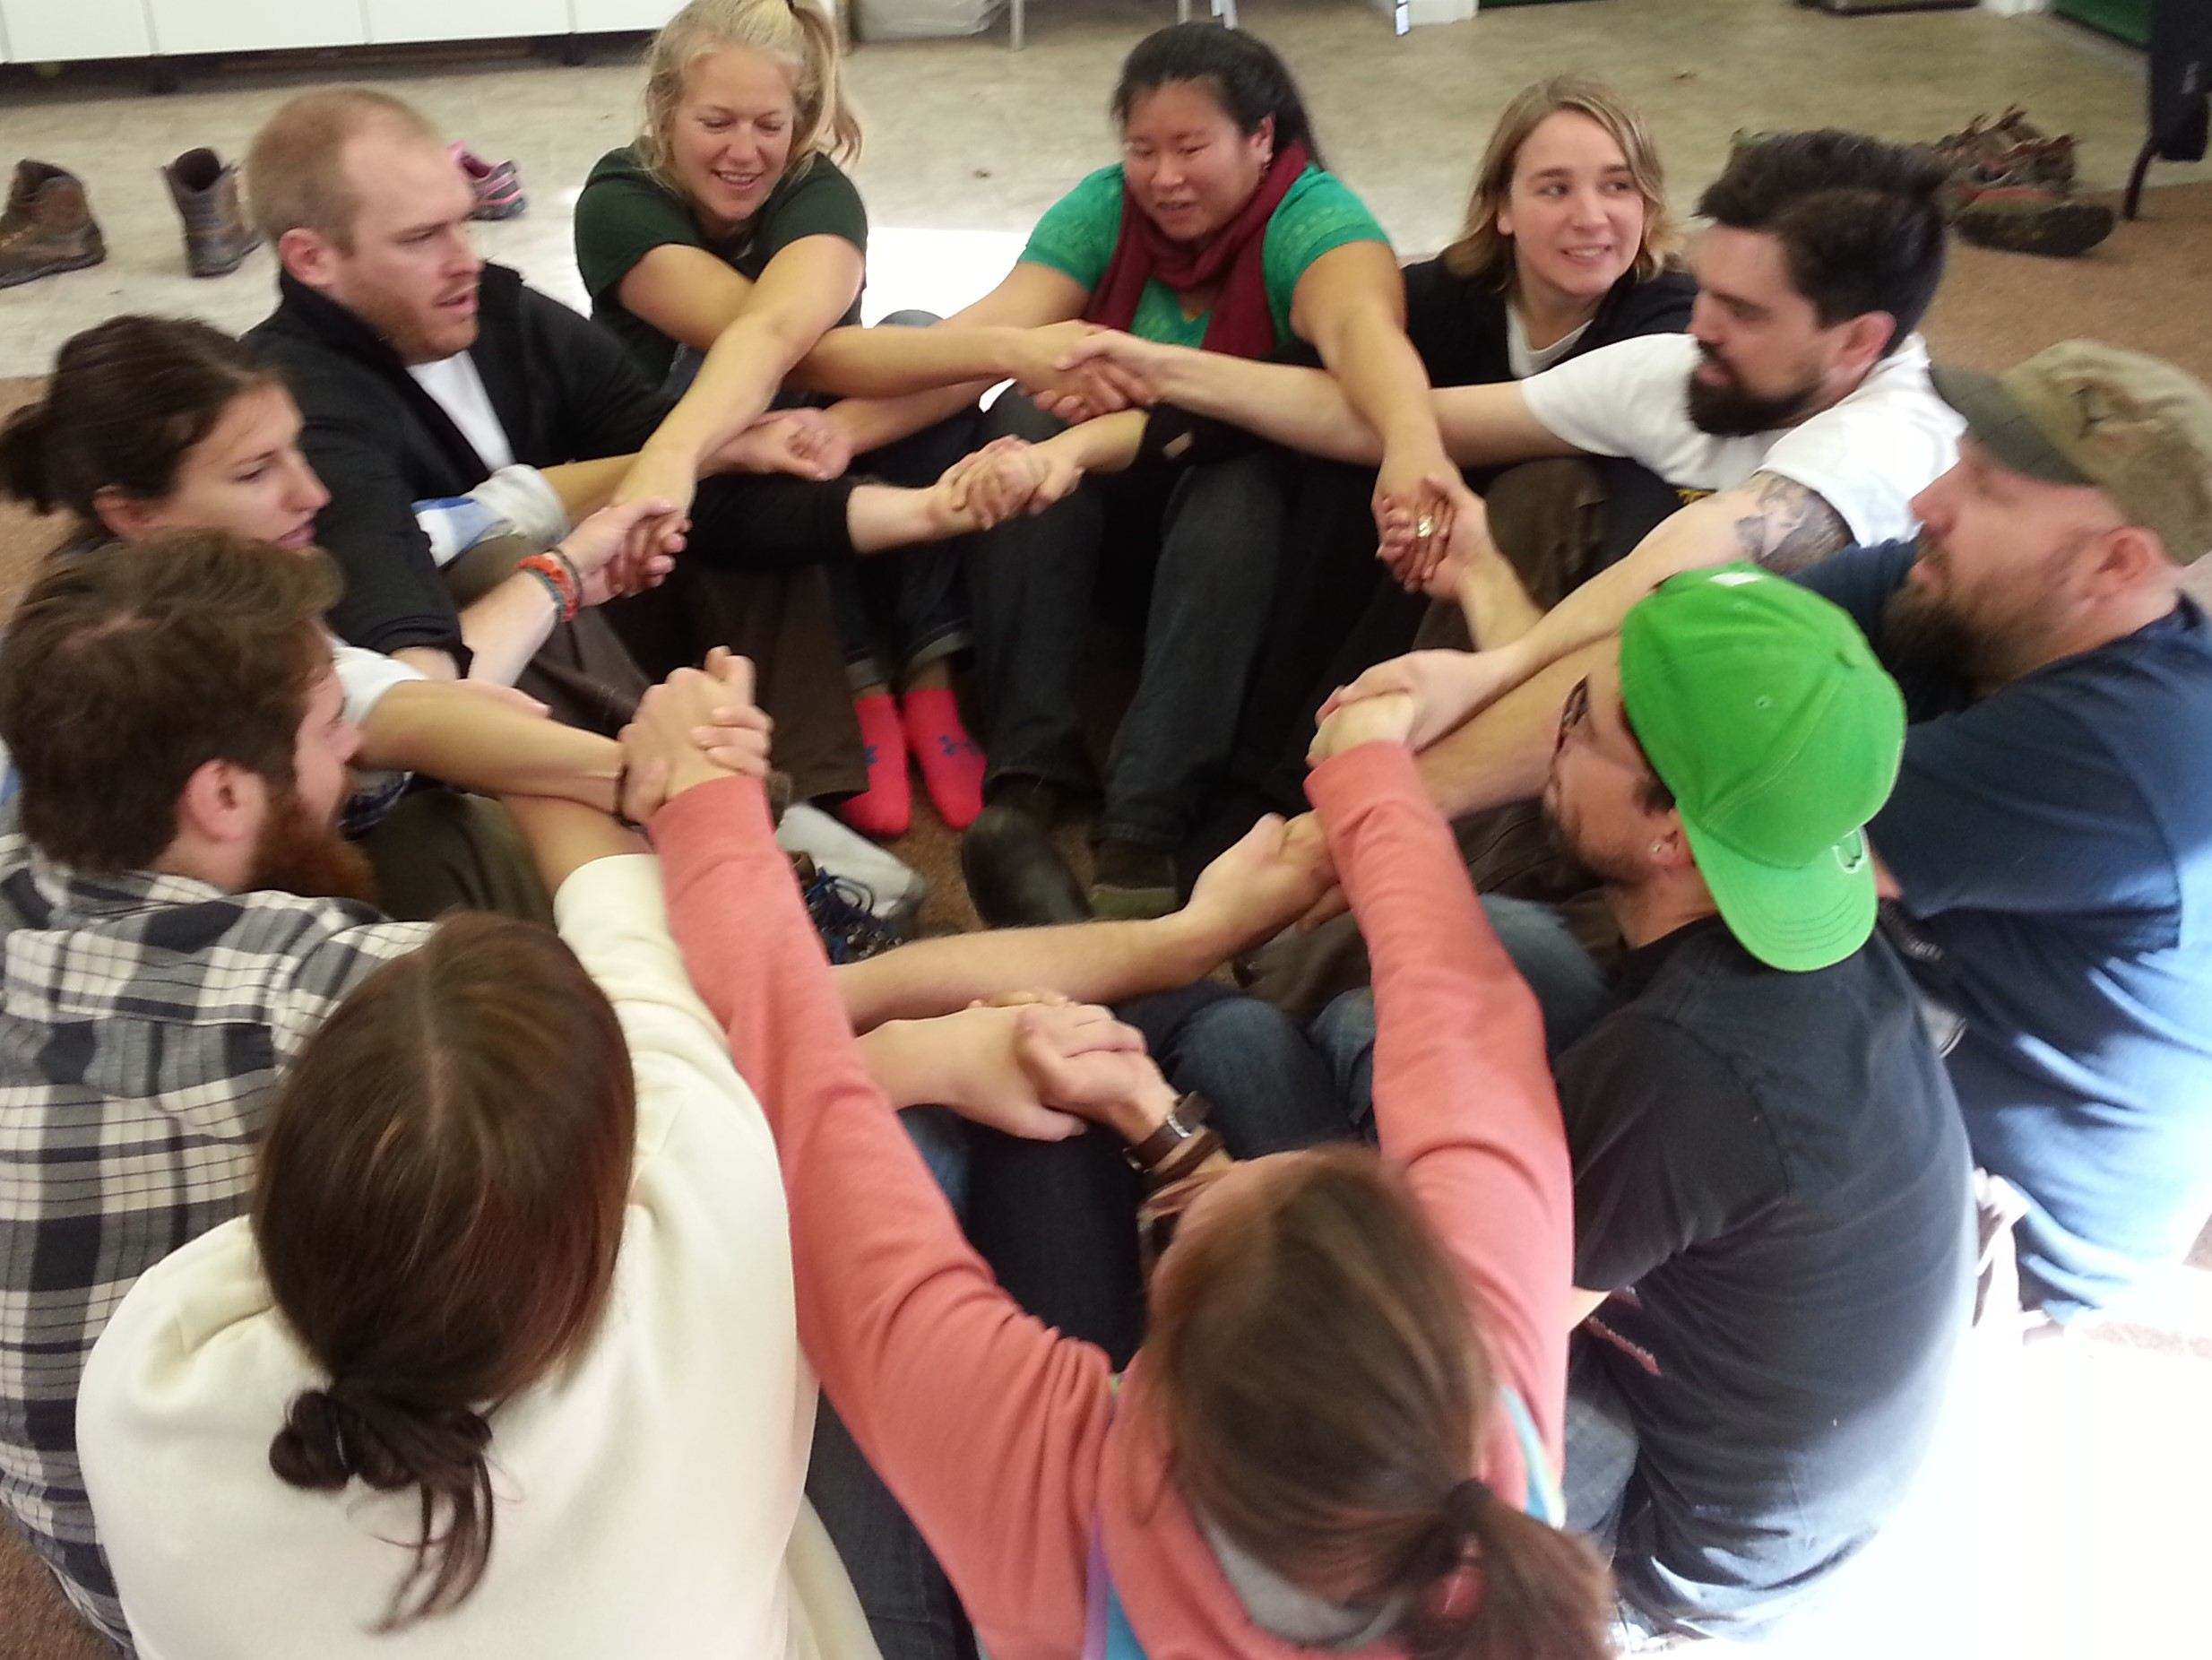 Old is new again… Leadership and Team Building activities that work